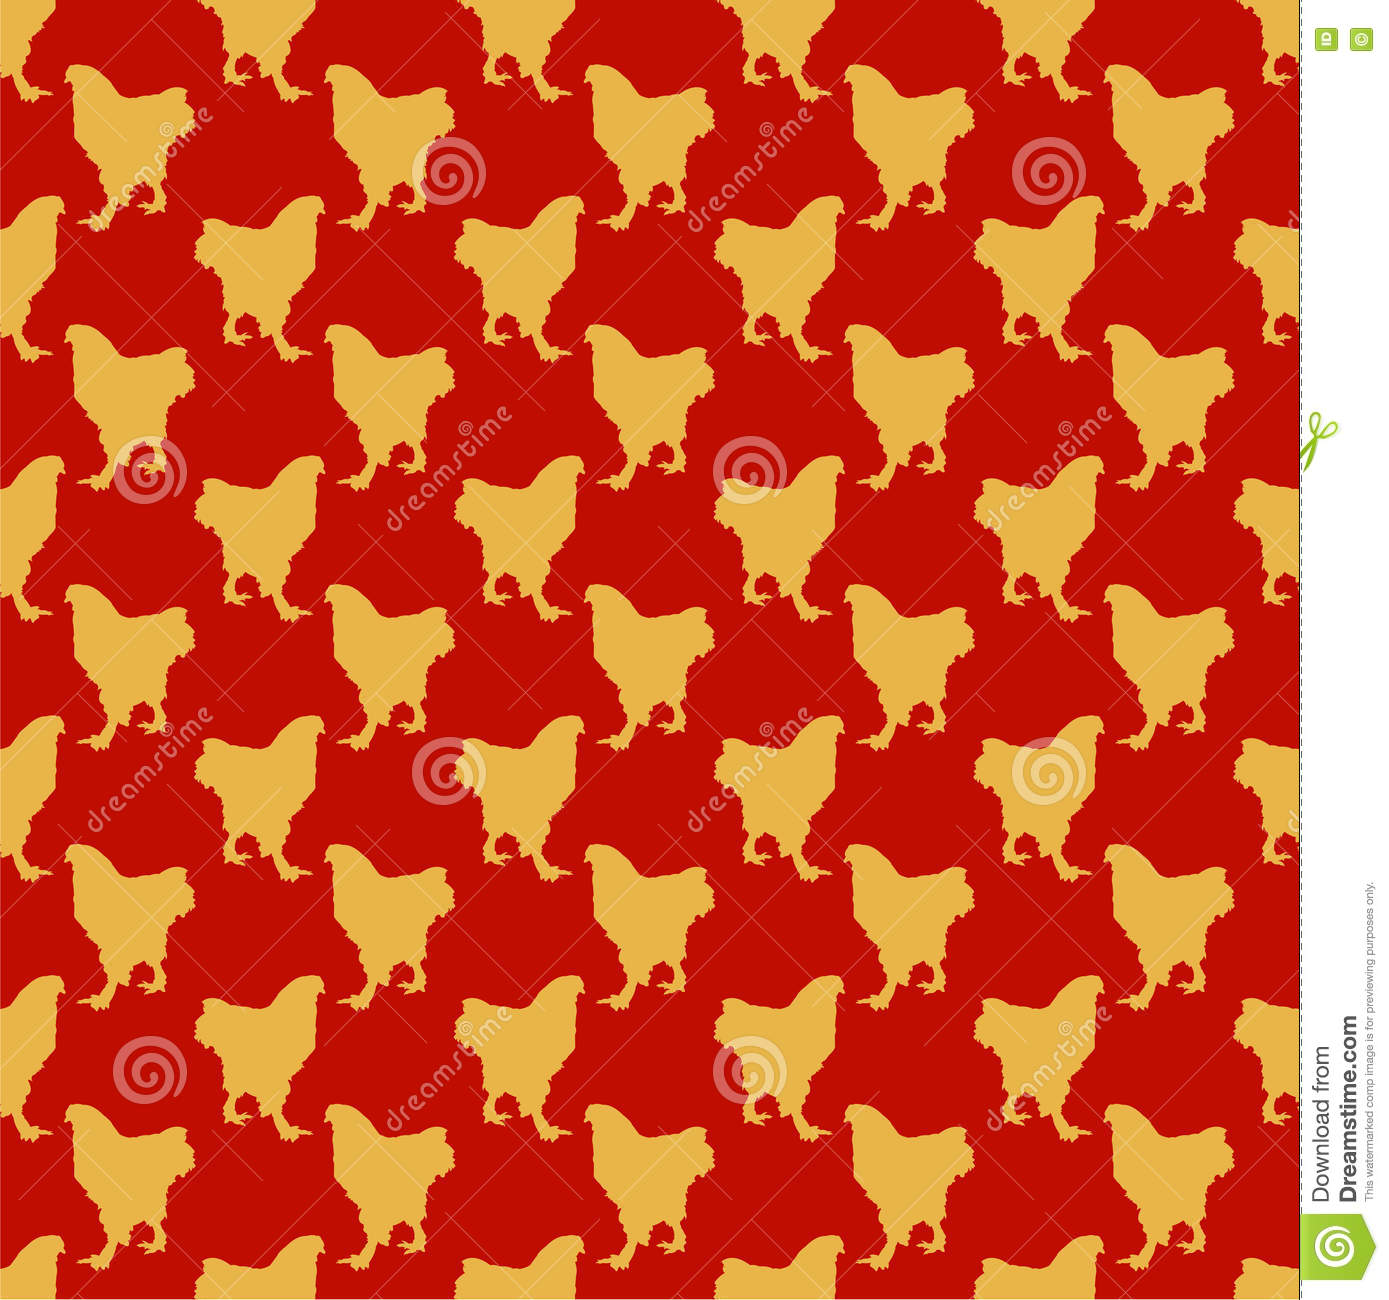 red seamless pattern with yellow roosters chinese new year theme